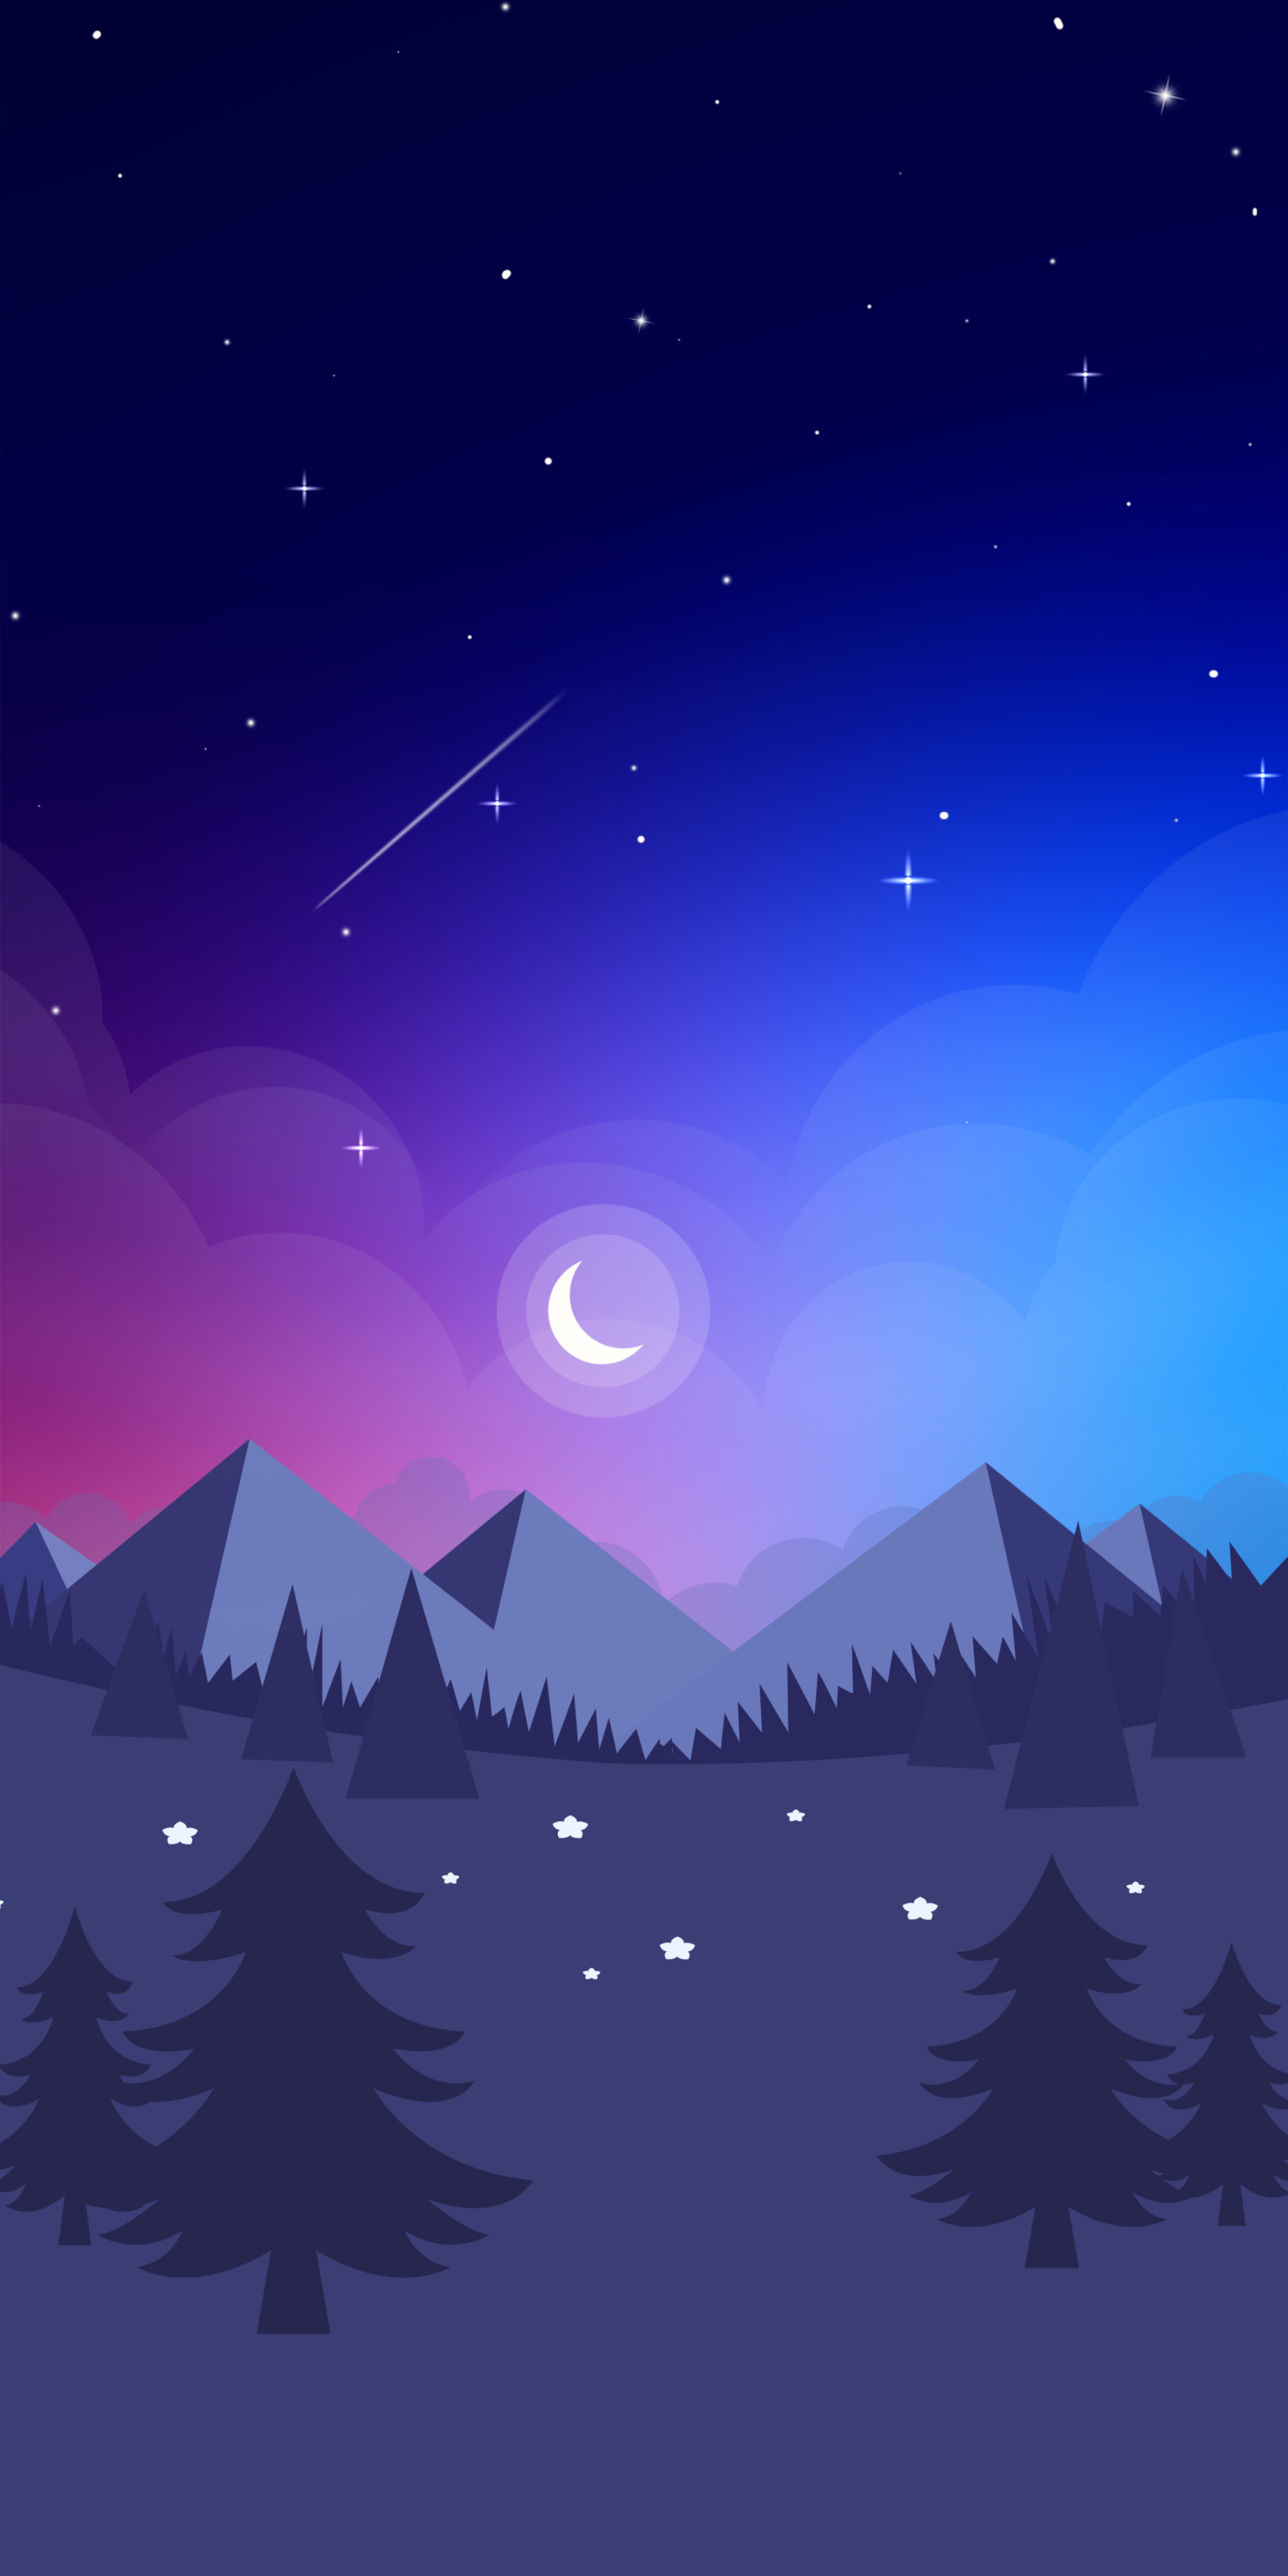 Frozen landscape wallpapers for a snowy iPhone